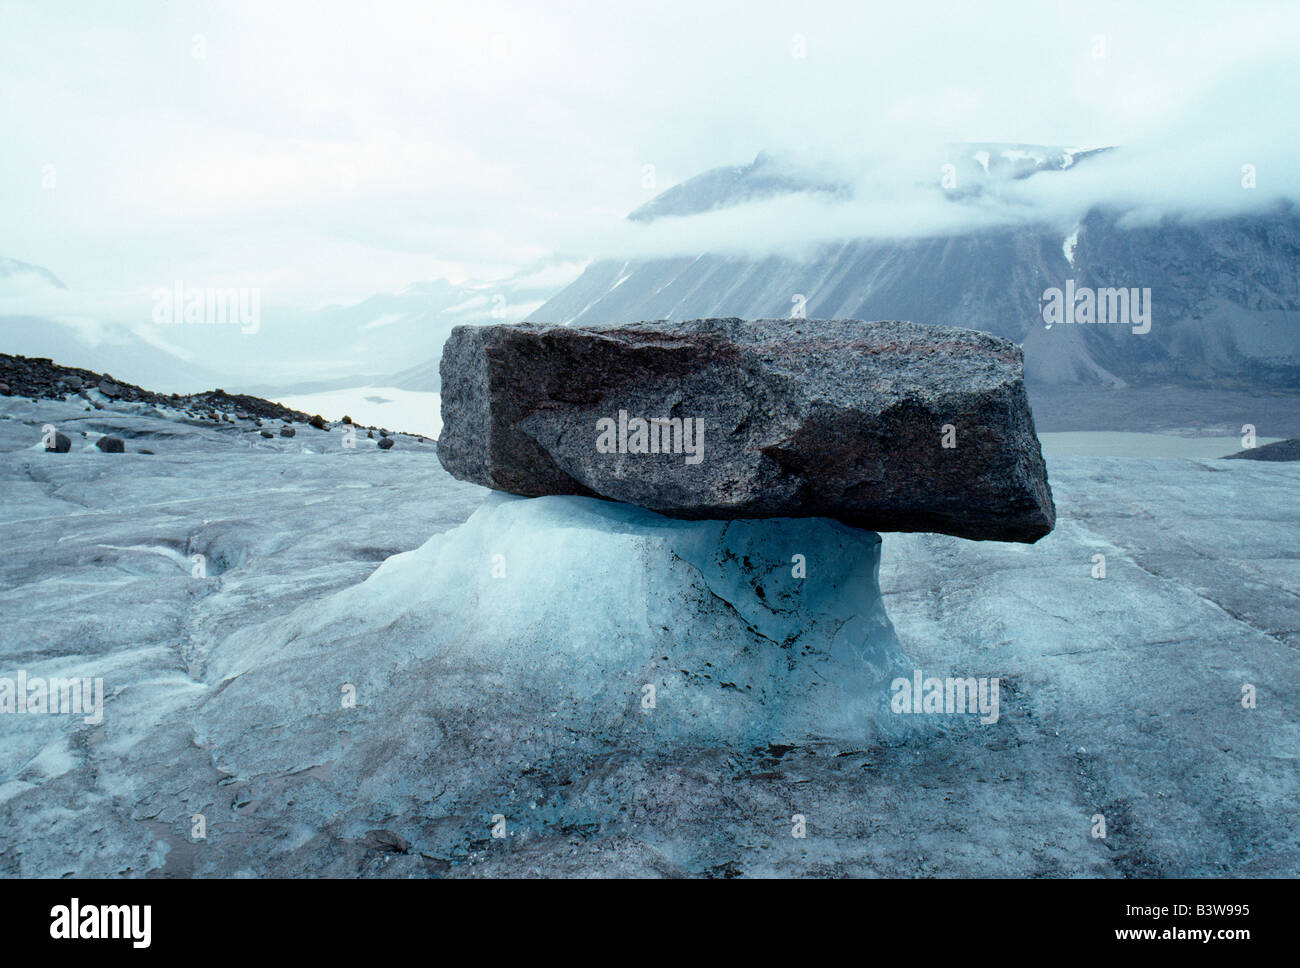 ROCK & ICE, VIEW FROM TURNER GLACIER TO GLACIER LAKE BELOW, AUYUITTUQ NATIONAL PARK, BAFFIN ISLAND, NWT, NUNAVUT, - Stock Image